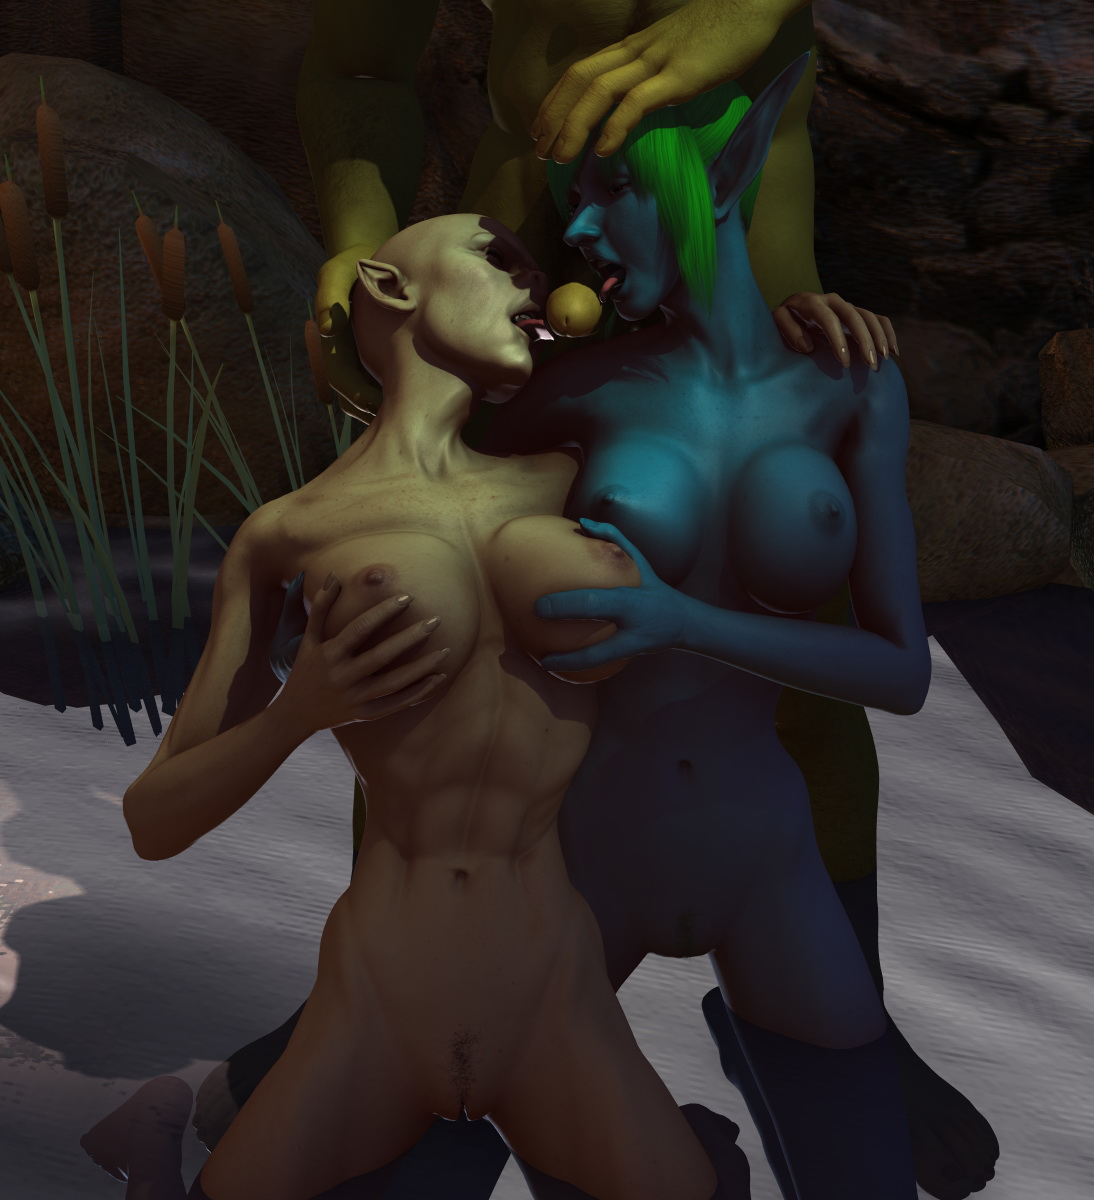 Demon fuck and piss elf chick adult girlfriends